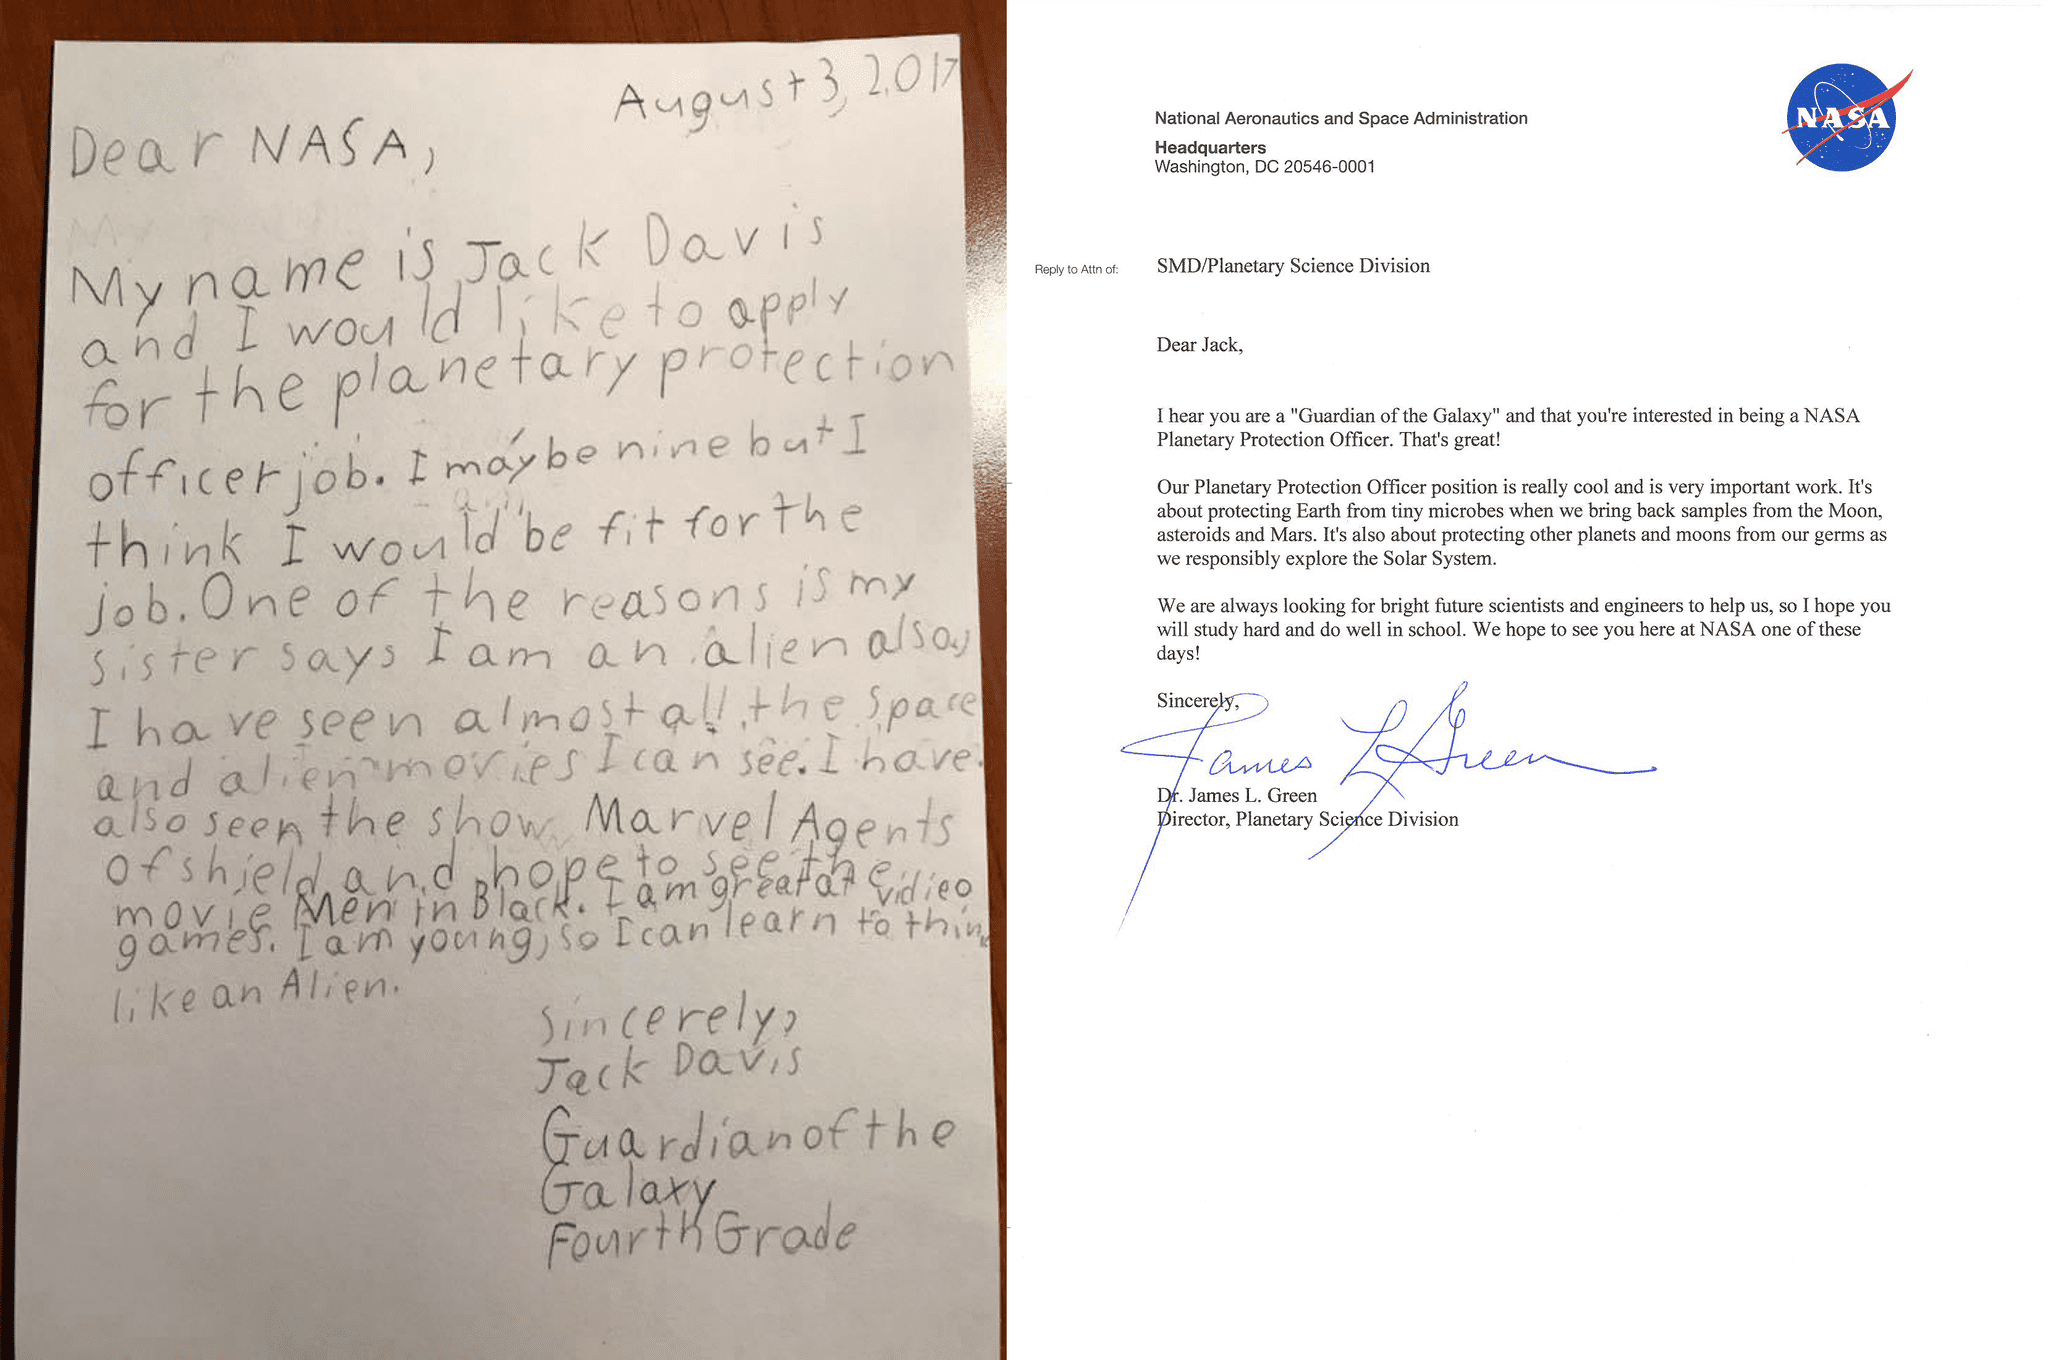 Nine-Year-Old Boy Applies For Job at NASA, Gets Response